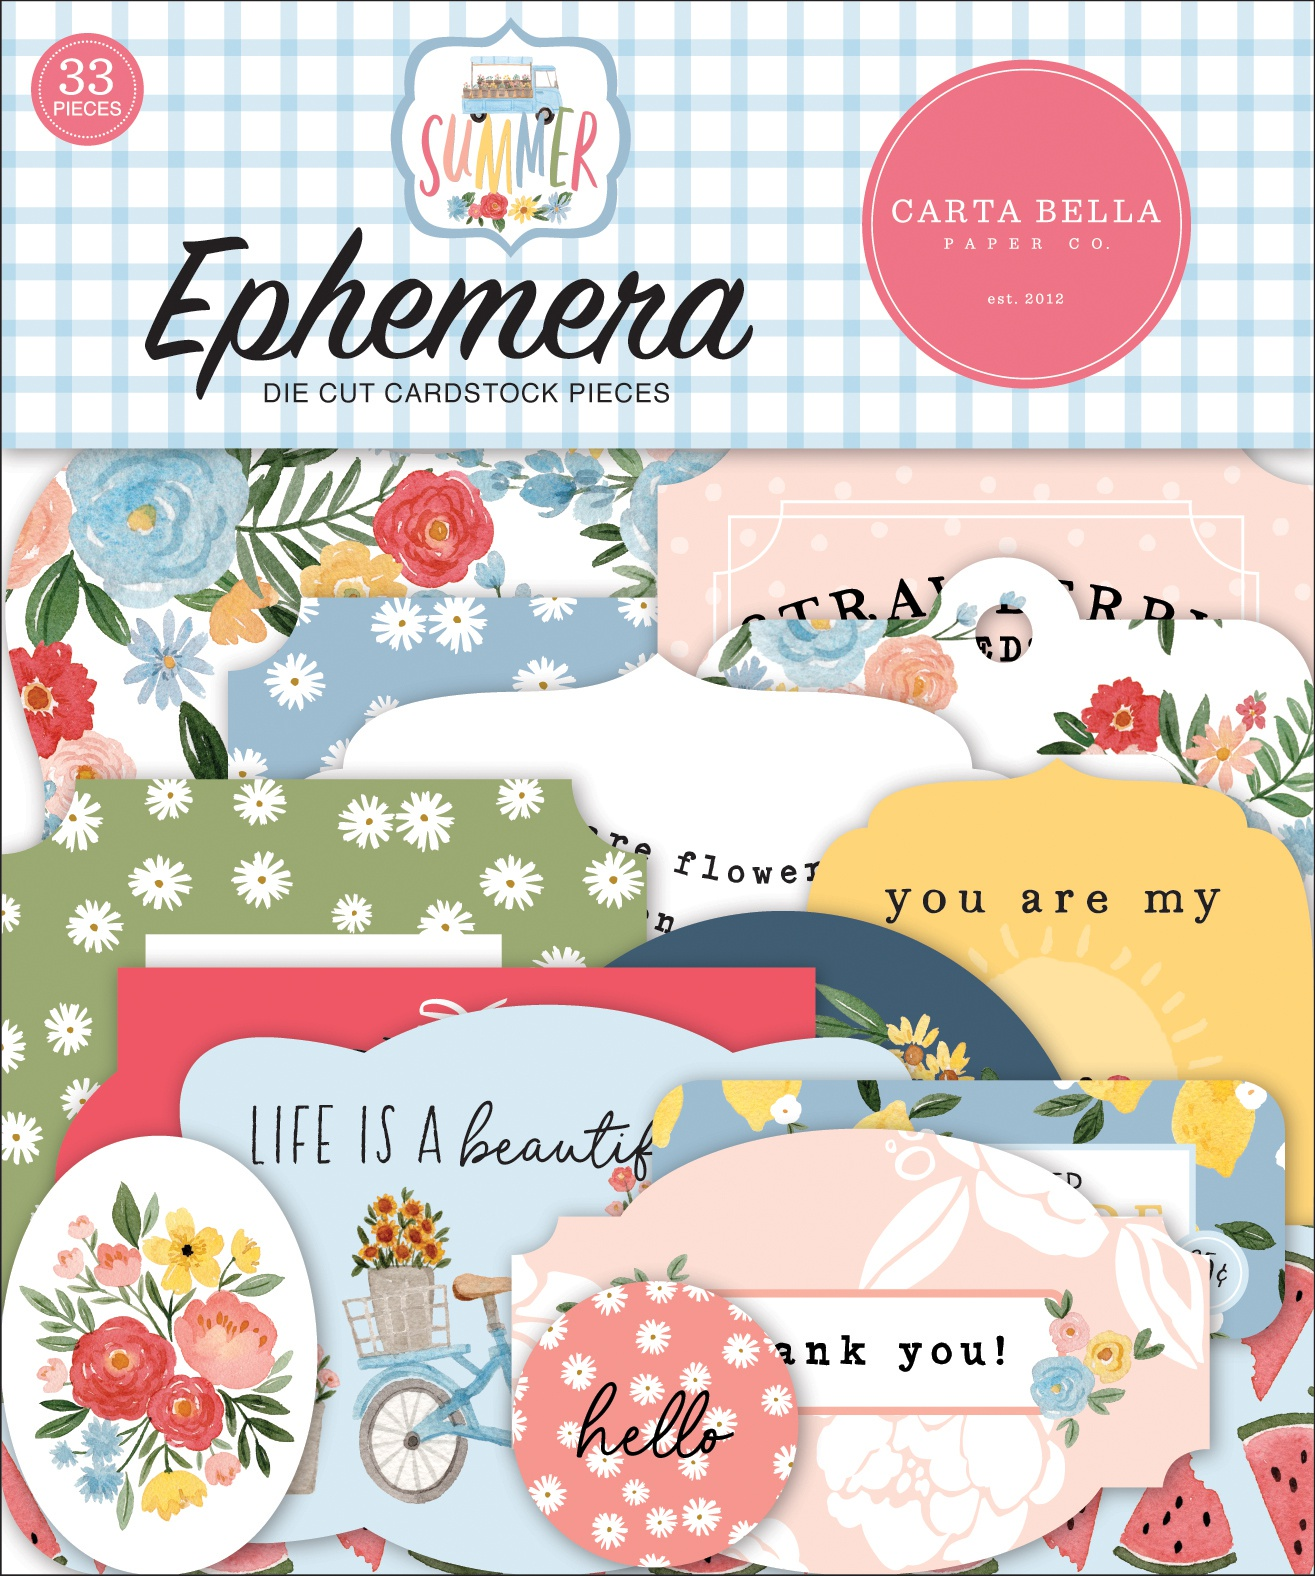 Carta Bella Cardstock Ephemera 33/Pkg-Icons, Summer